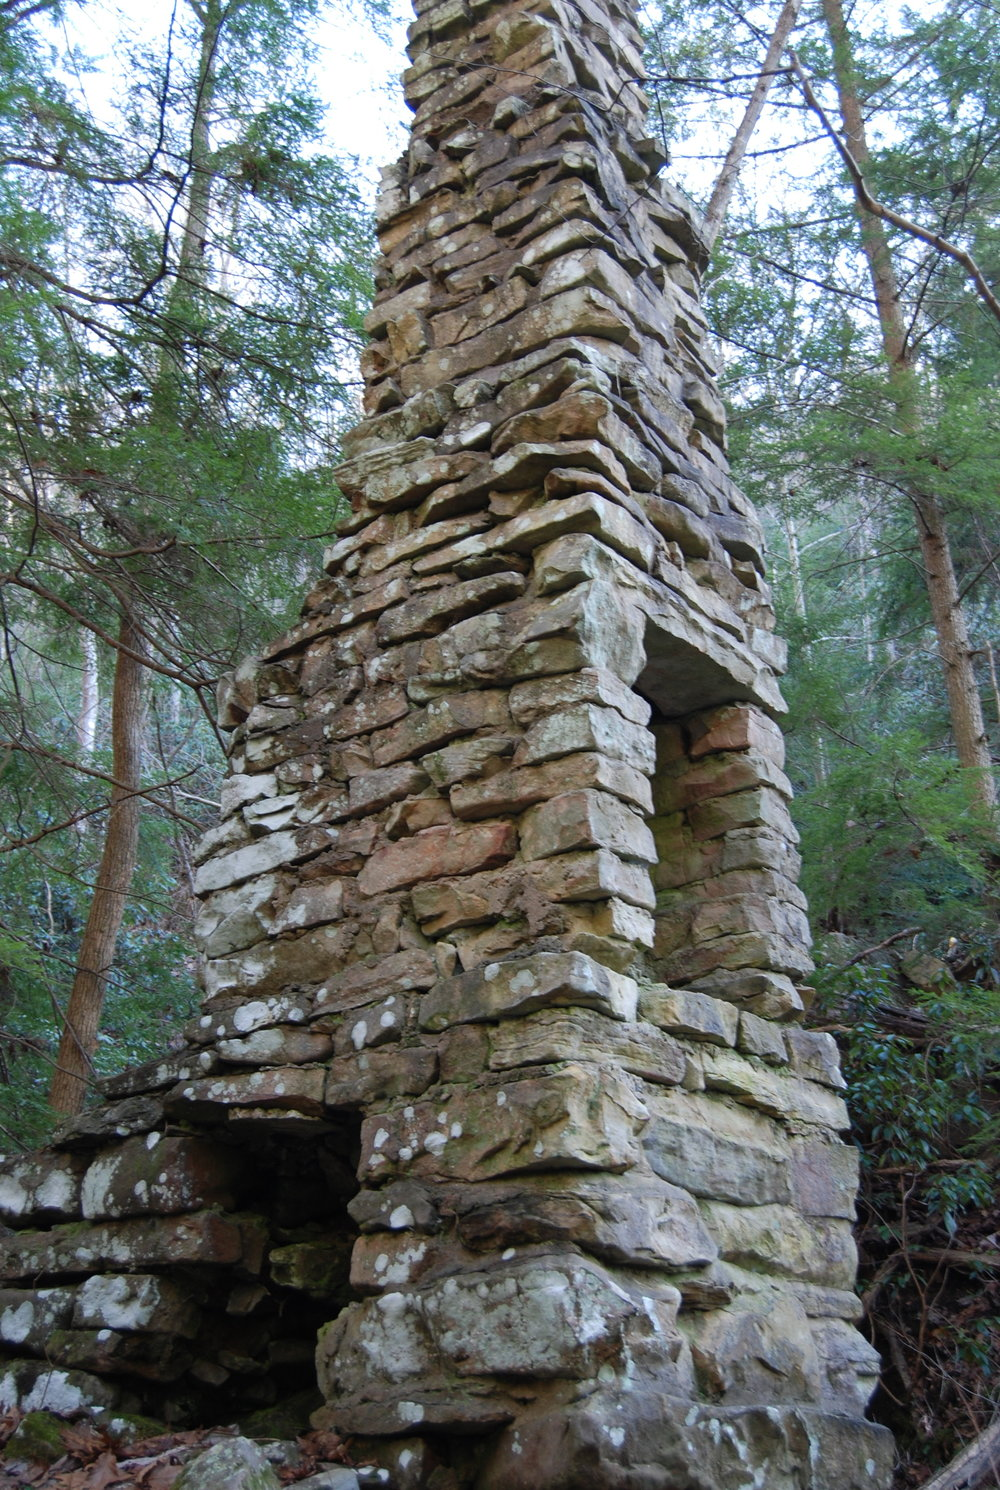 Harvey LaFollette's summer home chimney